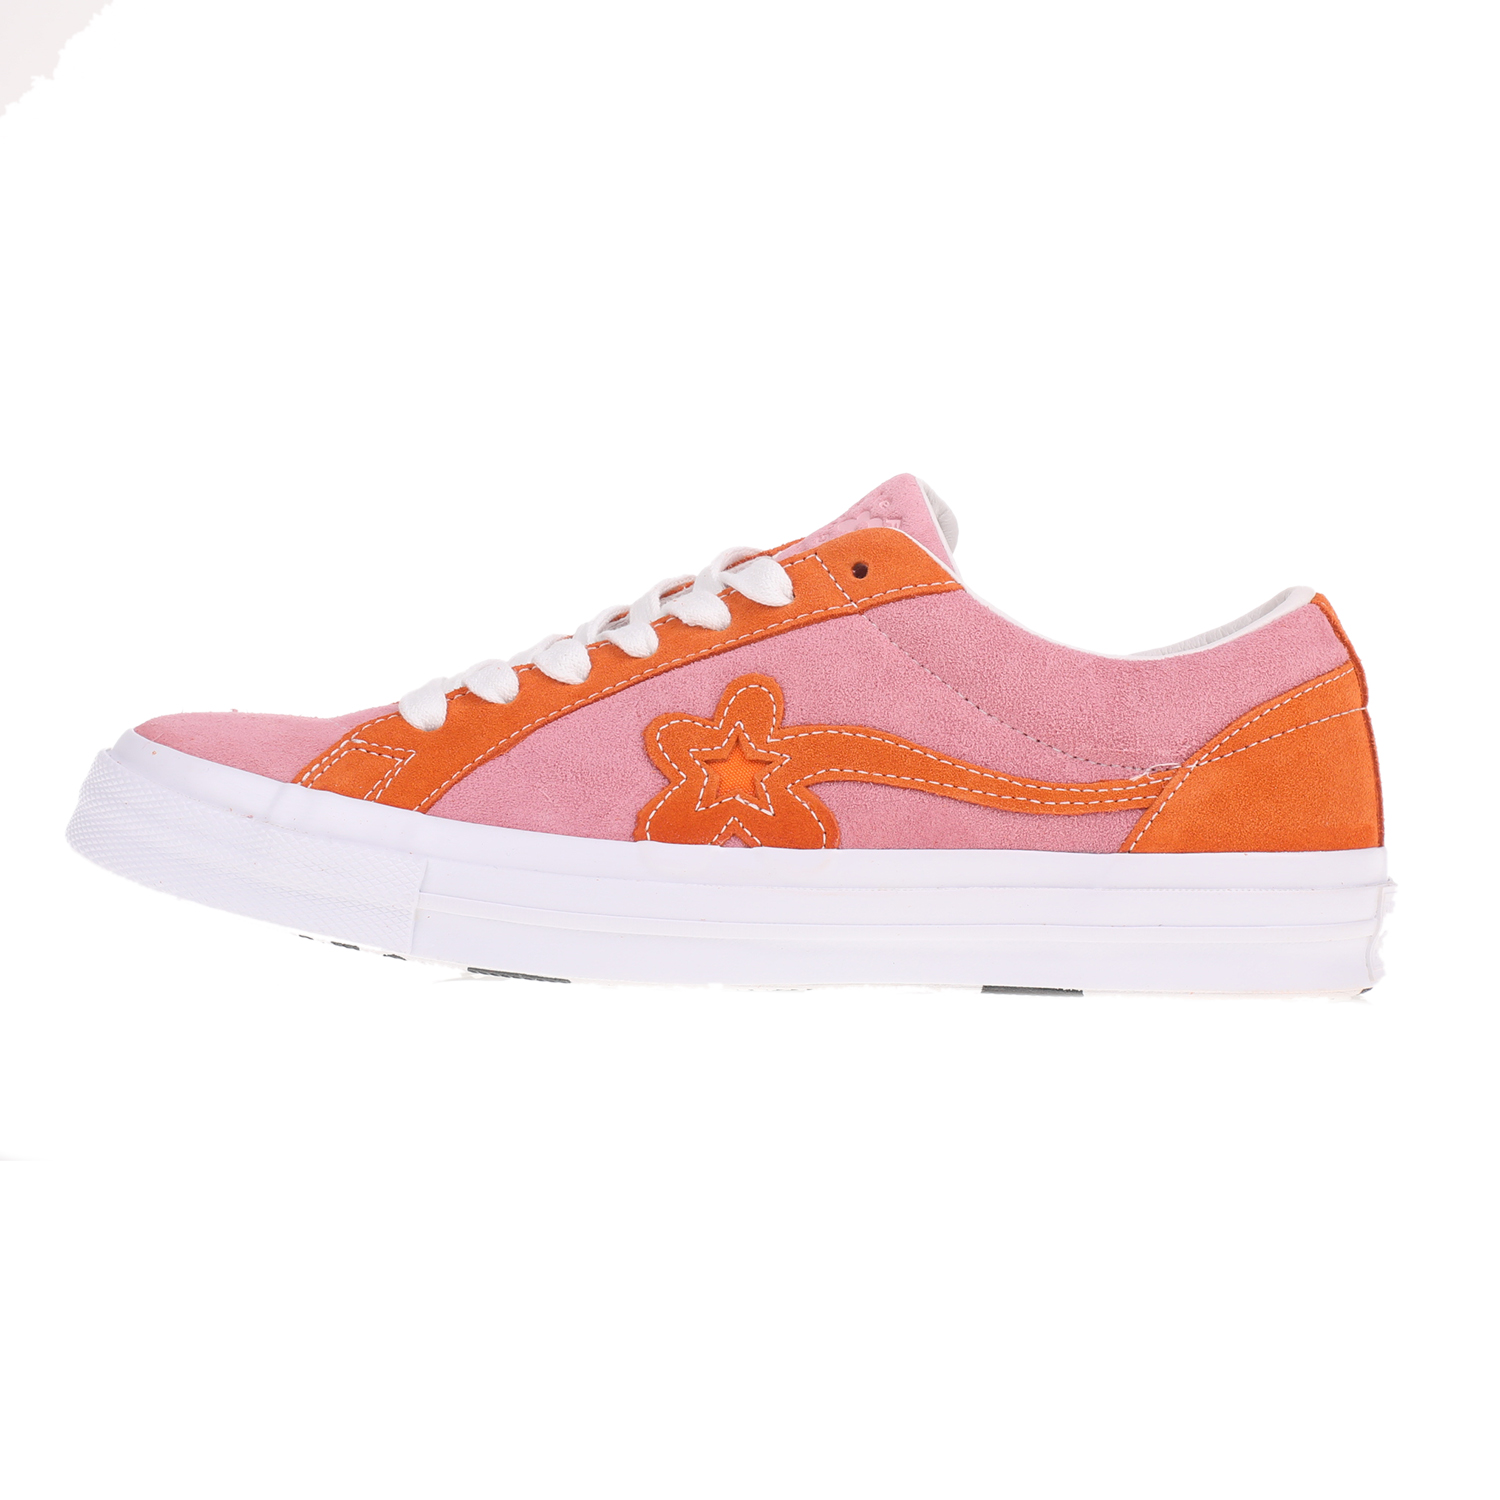 ee2f6f8310c -30% Factory Outlet CONVERSE – Unisex sneakers CONVERSE One Star Golf Le  Fleur ροζ